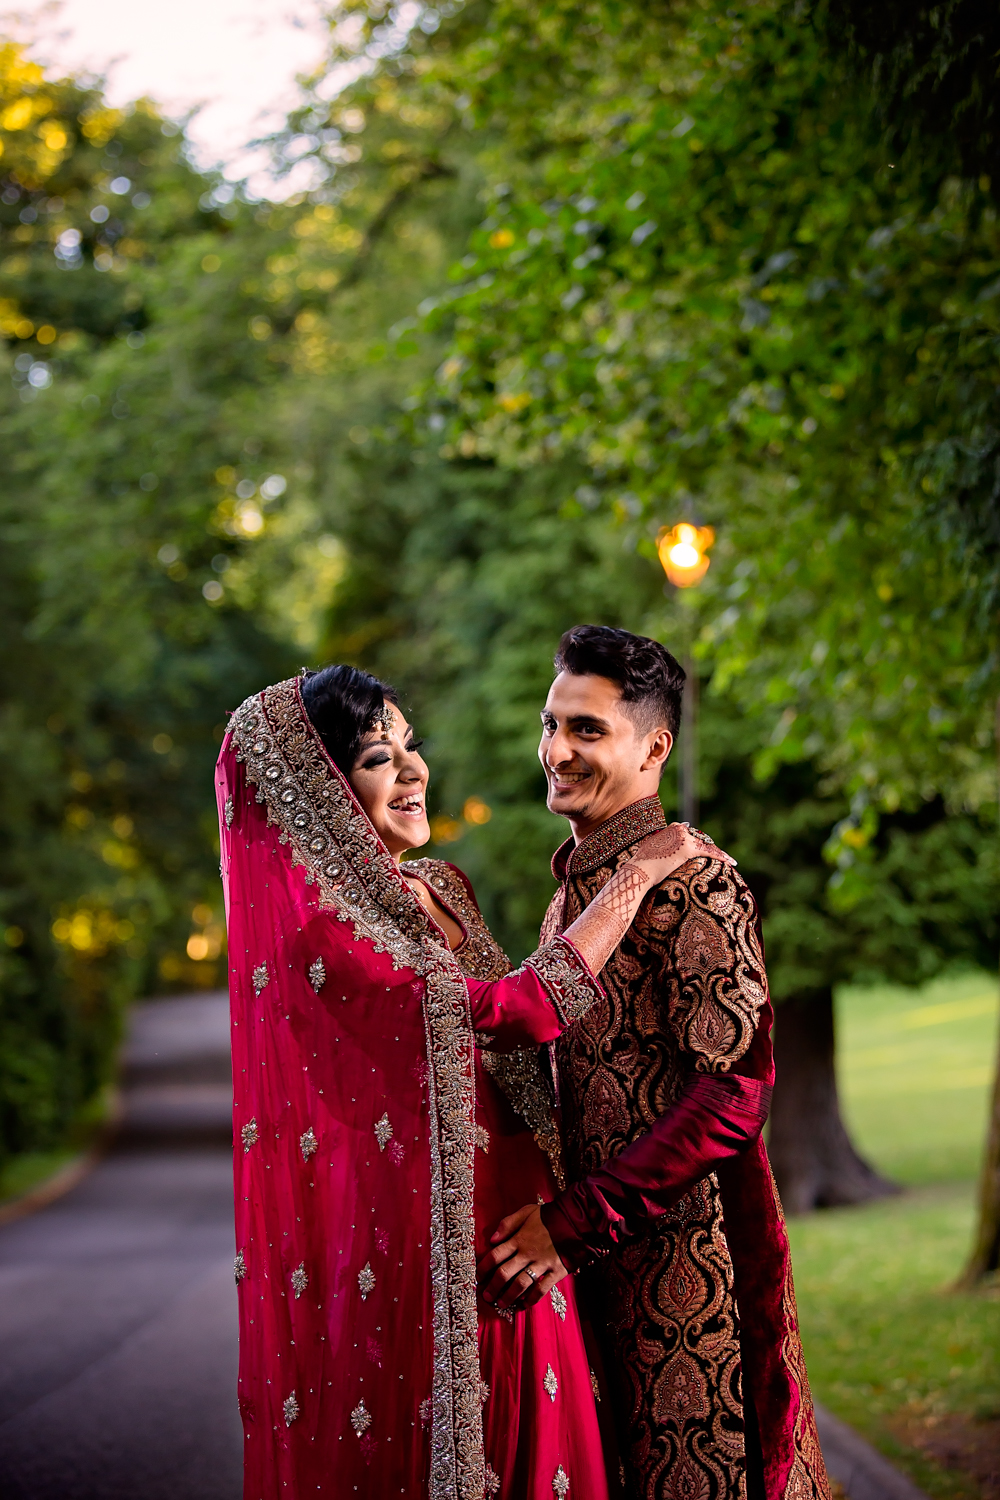 Huma & Junaid Wedding at Dunblane Hydro Doubletree by Hilton Hotels Stirling, Edinburgh  Wedding Photography Edinburgh with Opu Sultan Photography, Asian Wedding Photographer Edinburgh, Asian Wedding Photography Edinburgh Walima Photography with Opu Sultan Photography, Asian Wedding Photographer Edinburgh